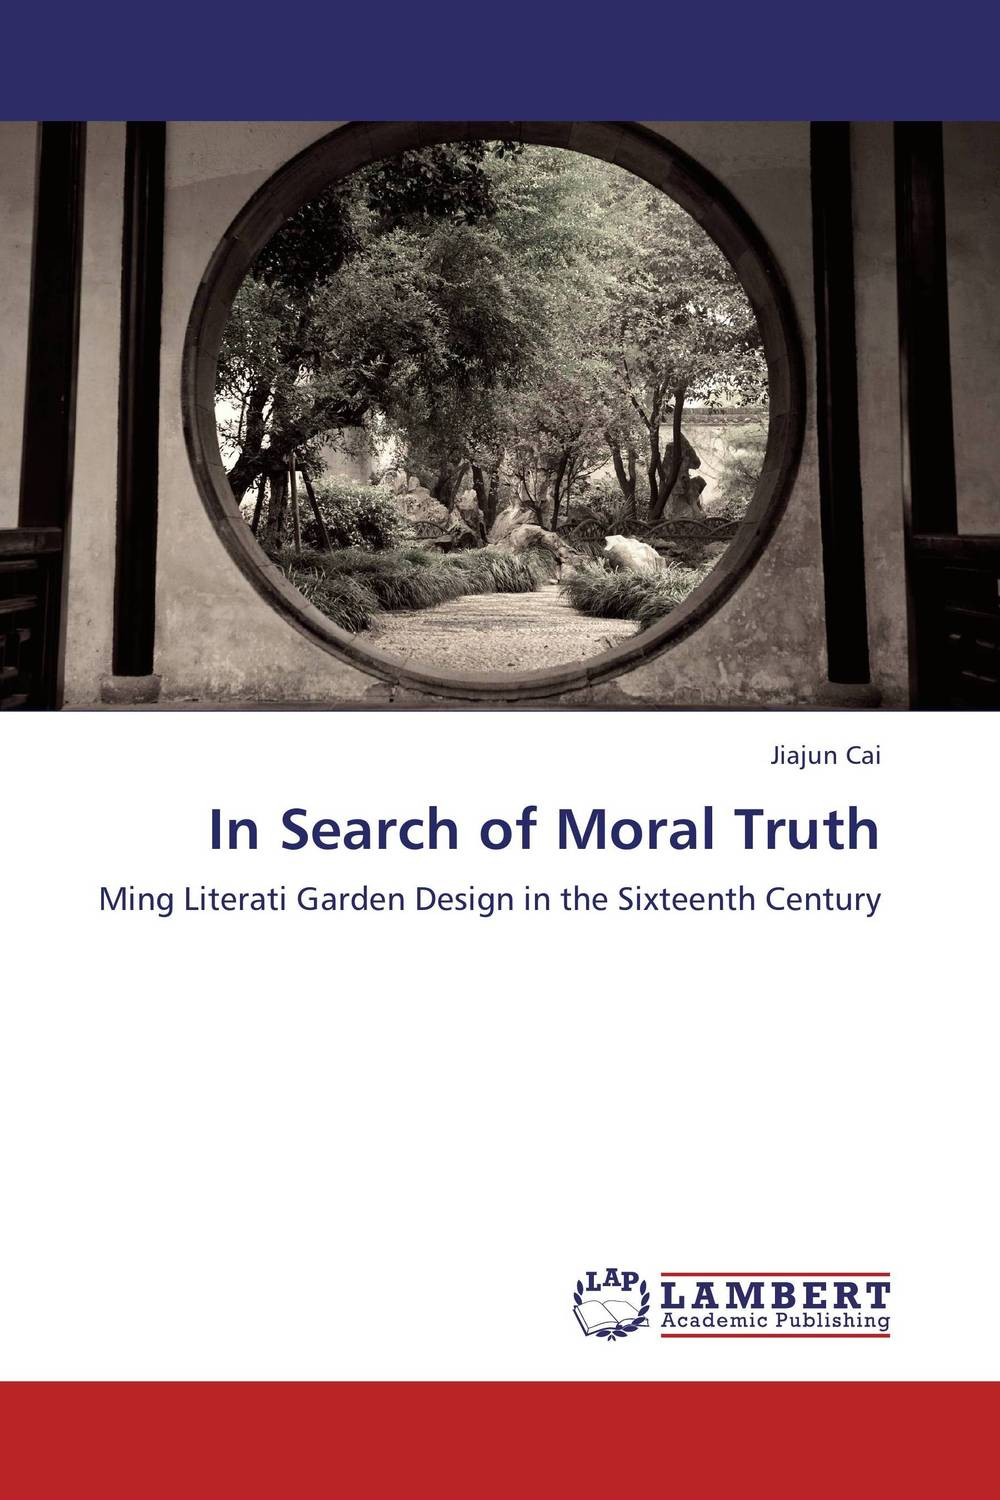 In Search of Moral Truth китайские шахматы friends of the ming 0811210